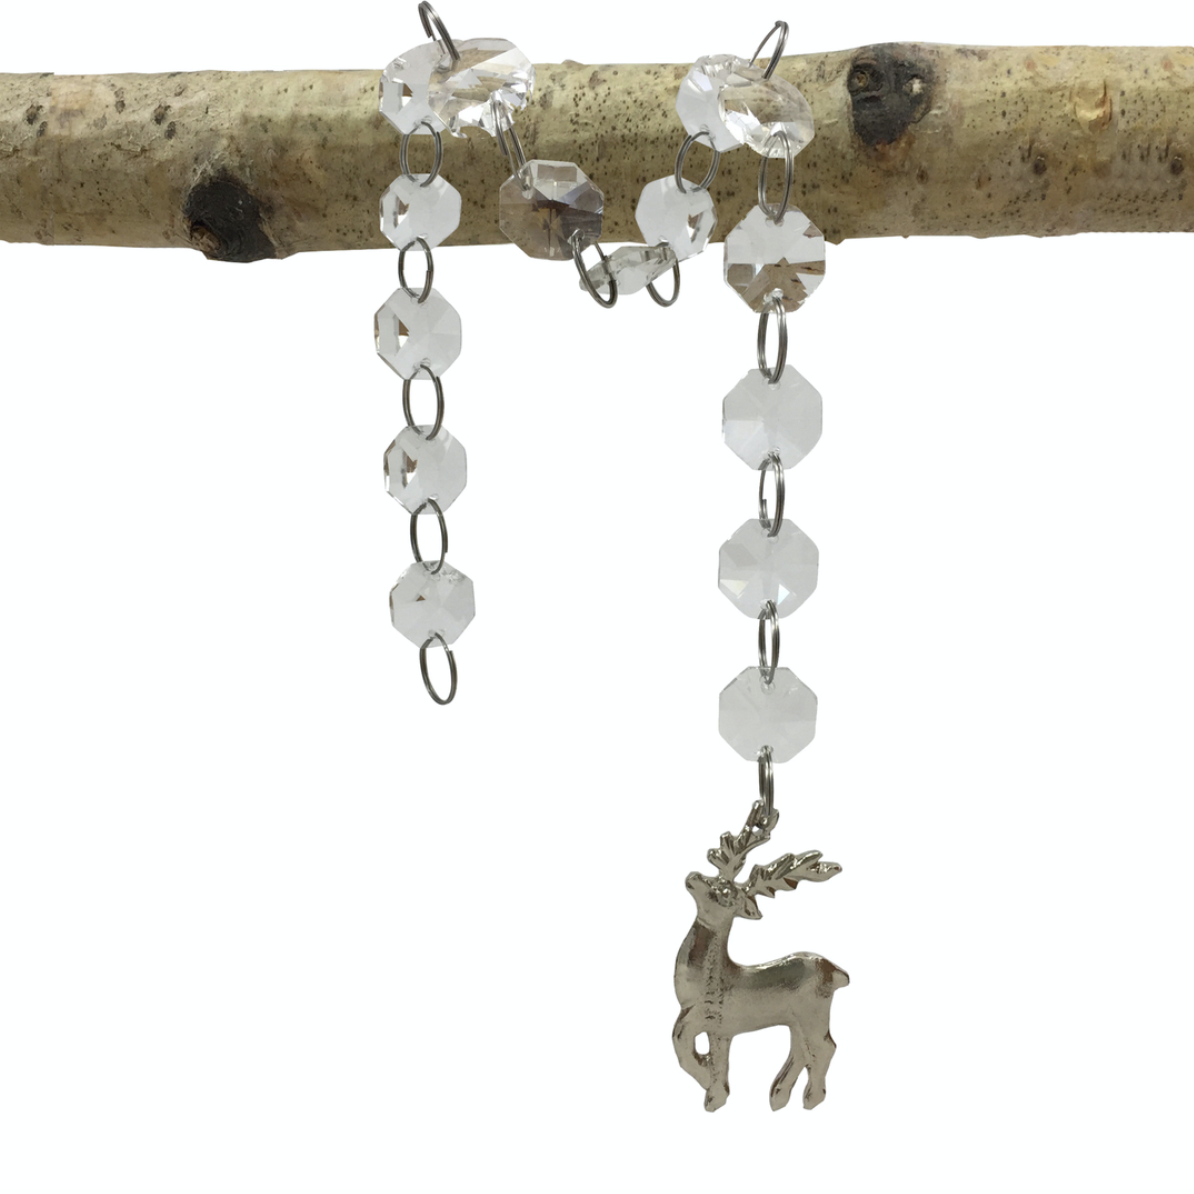 Hanging Glass Gem Chain with Stag Silhouette Set of 2